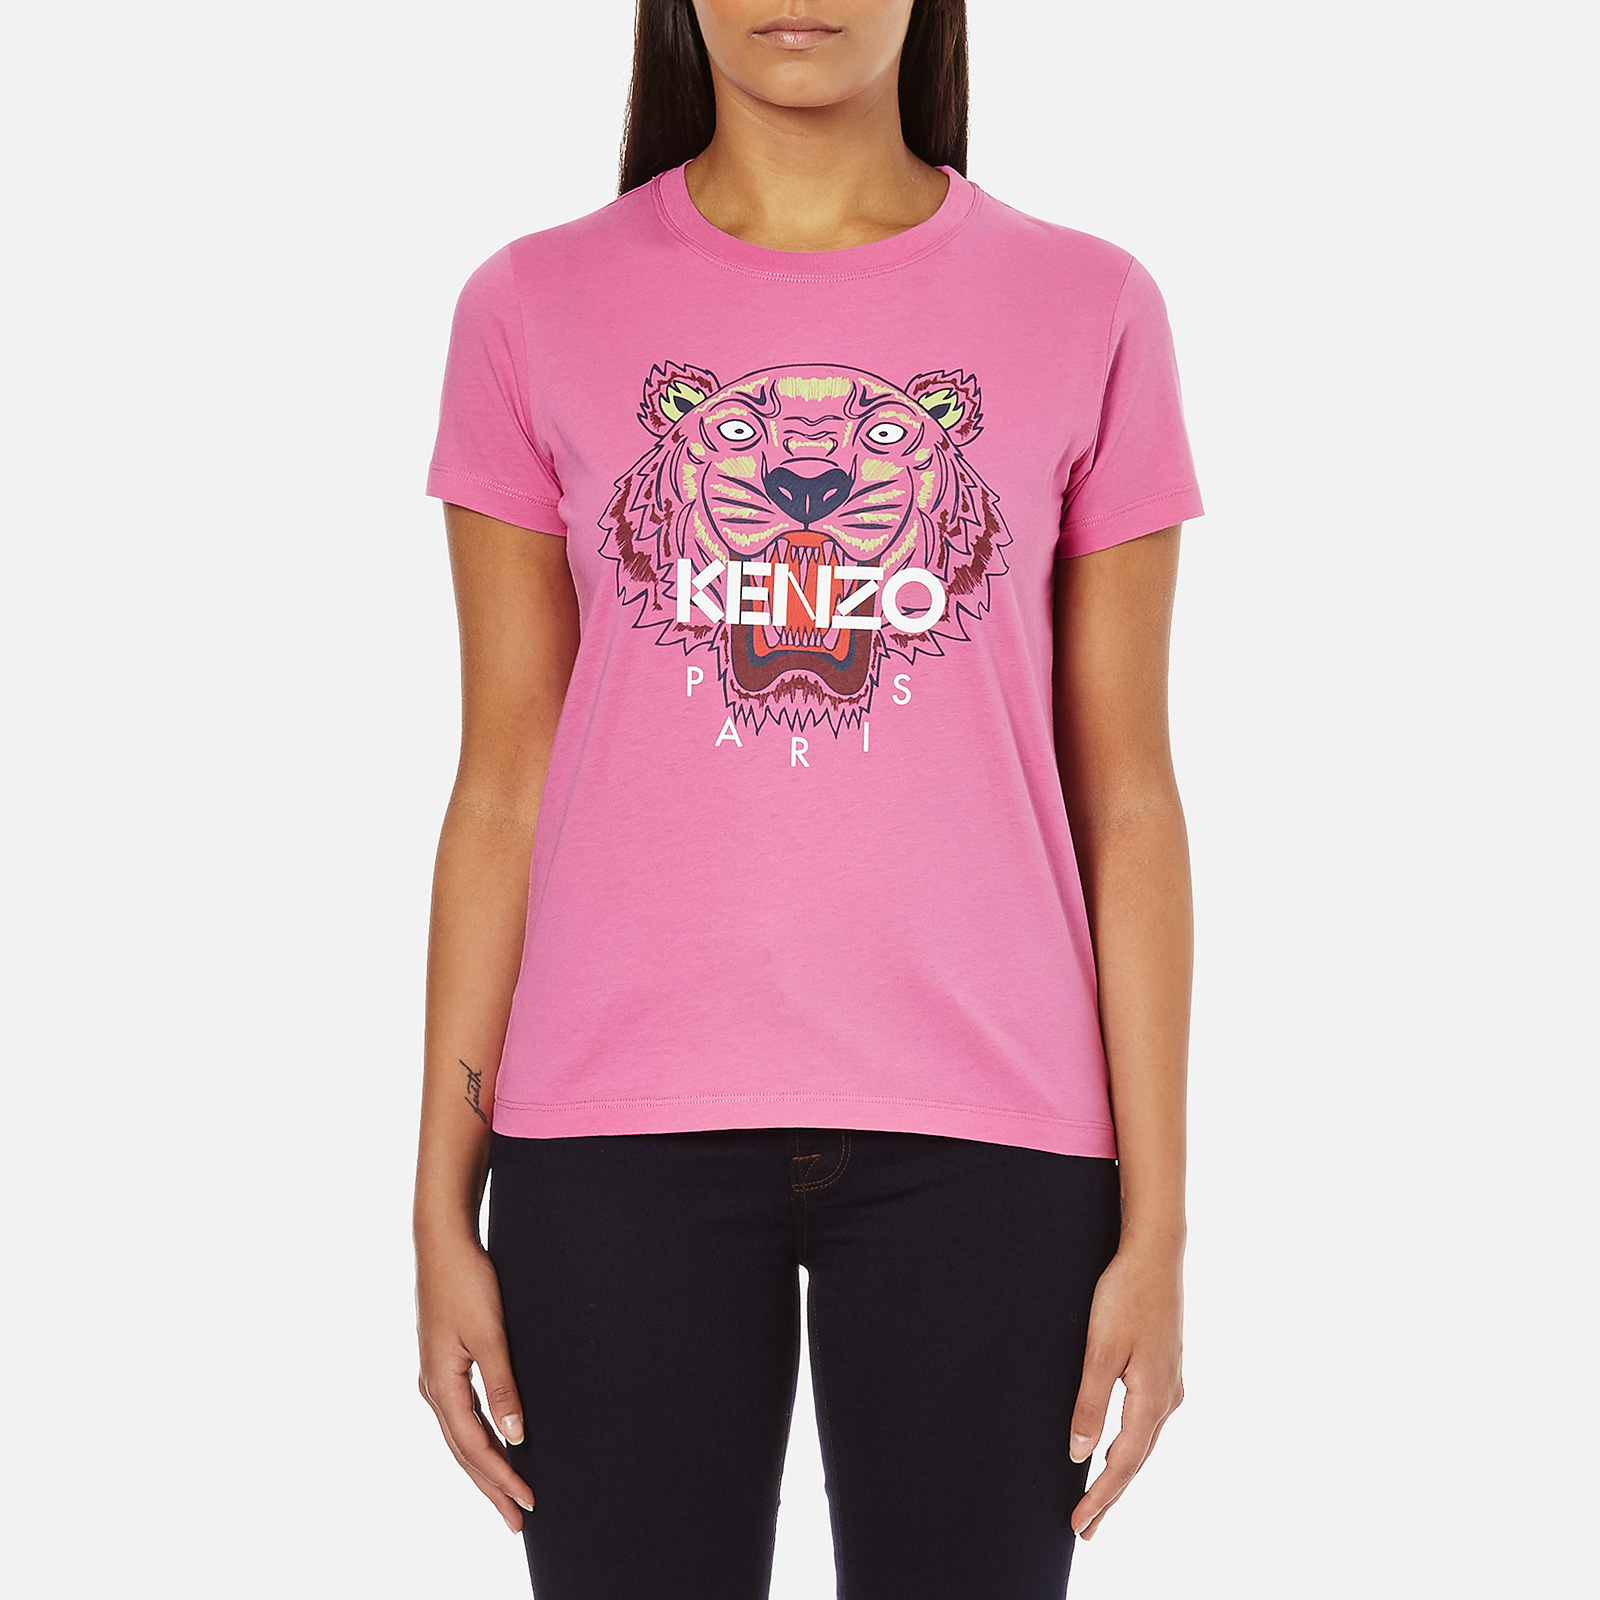 496f51871e85 KENZO Women's Tiger Embroidered T-Shirt - Begonia - Free UK Delivery over £ 50